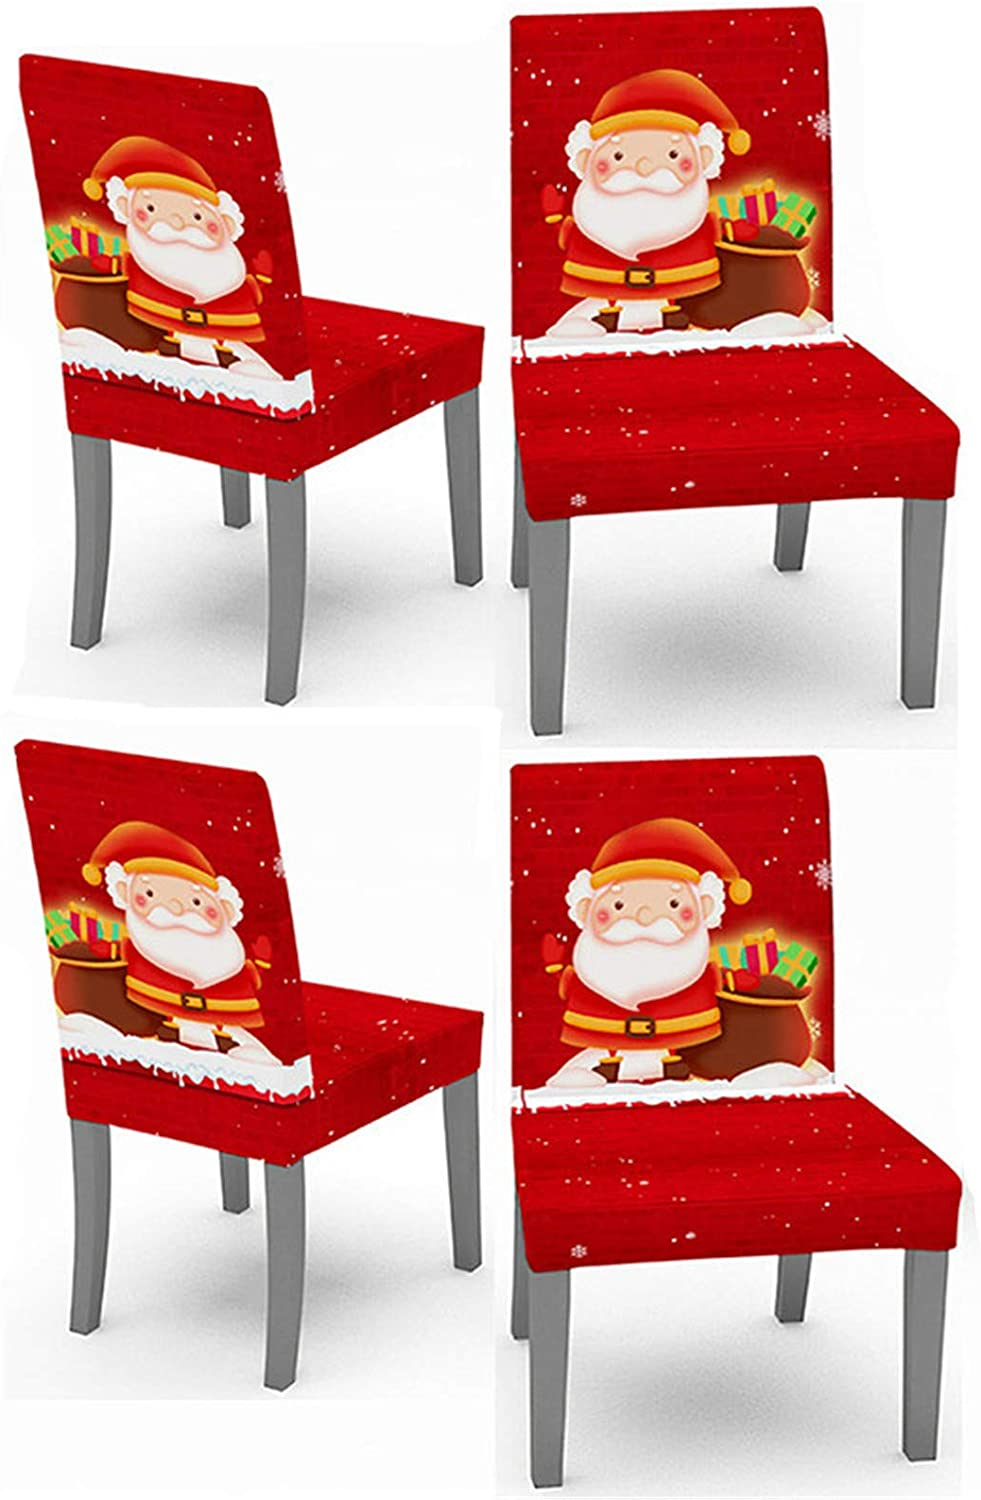 Crafttable 4pcs Stretch Dining Chair Slipcovers, Christmas Printed Chair Cover Seat Slipcover for Kitchen Home Hotel, 06